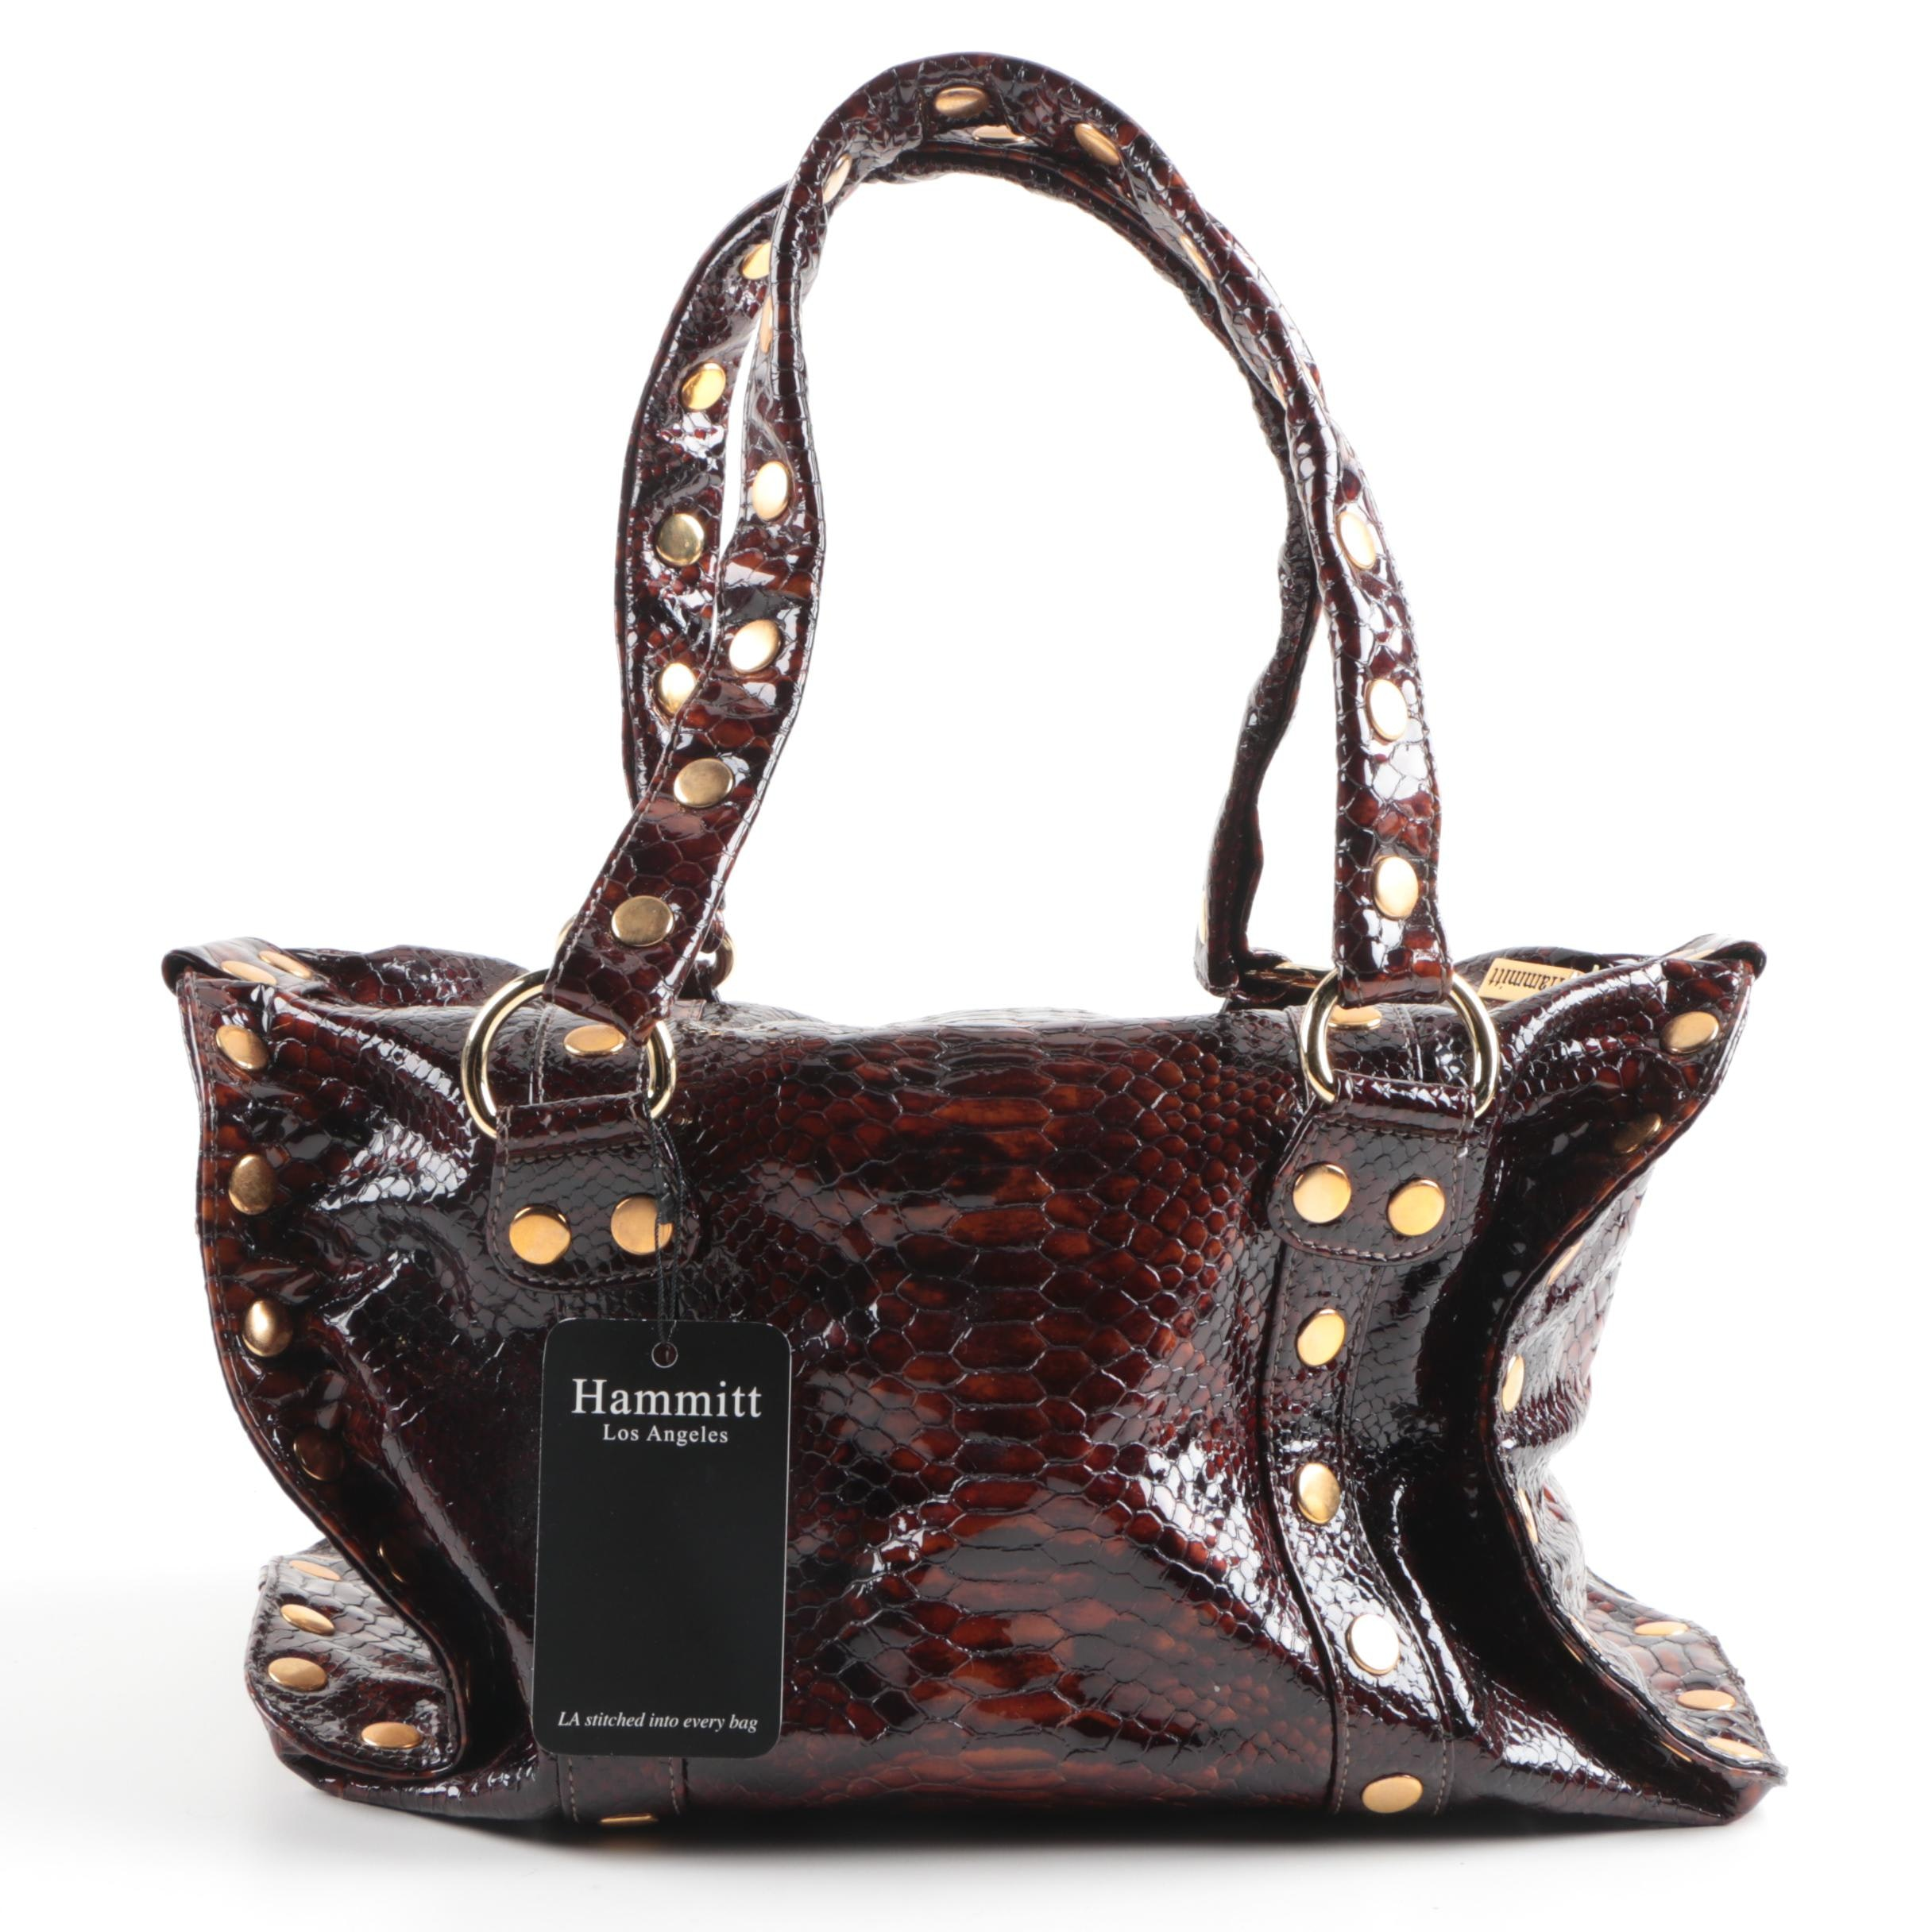 Hammitt Reptile Embossed Leather Handbag